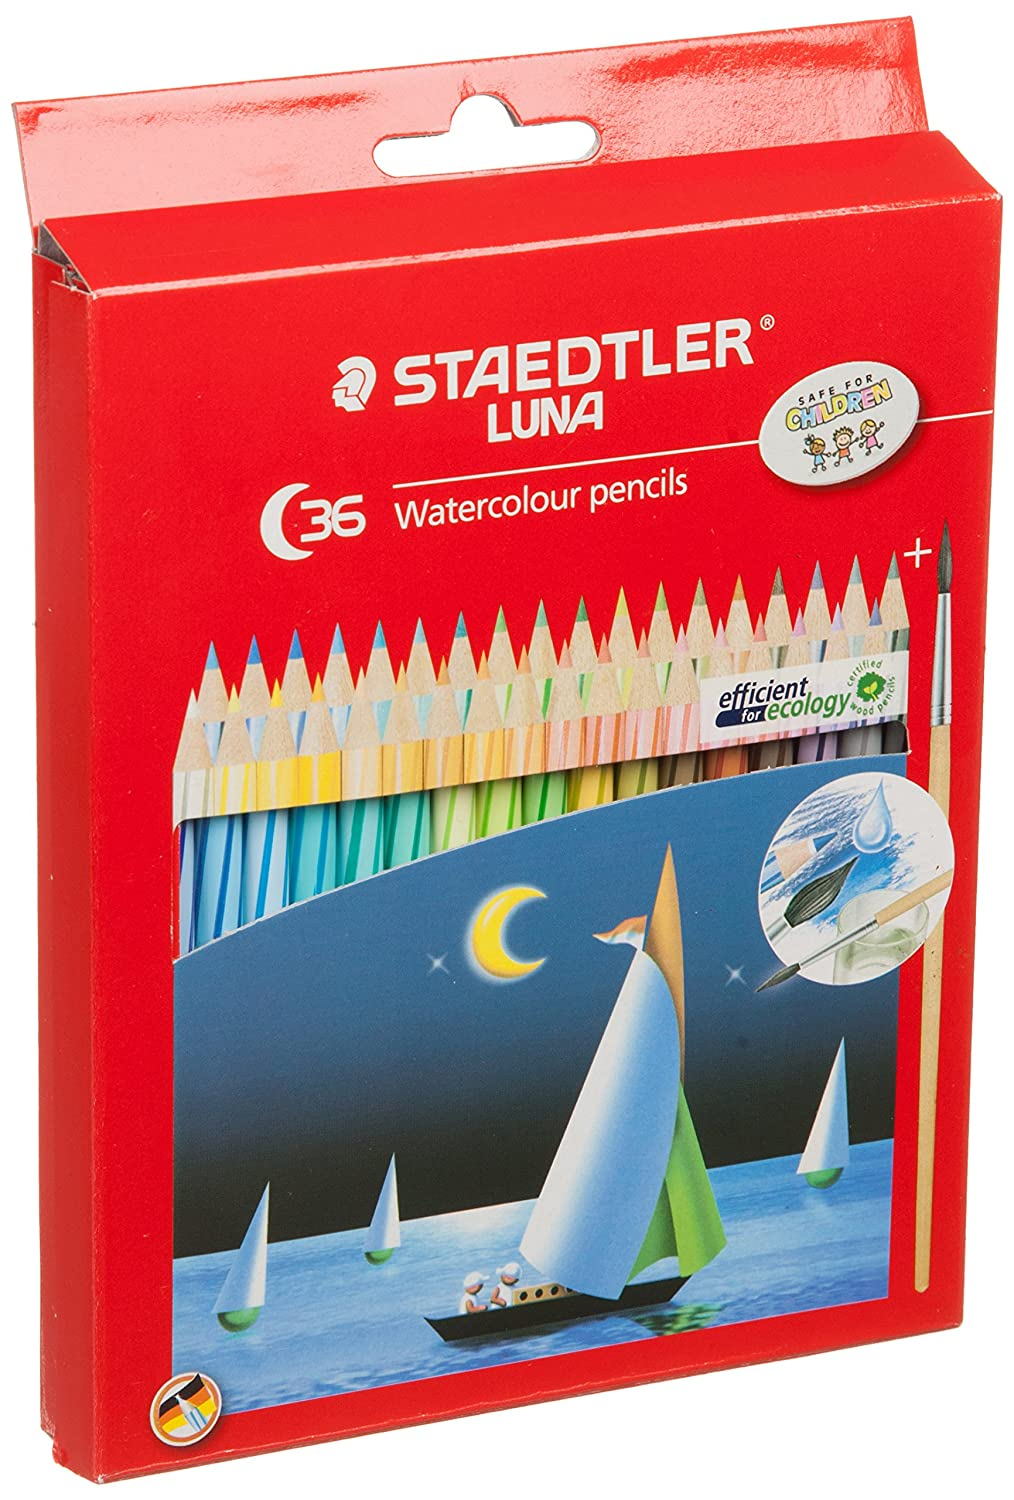 Staedtler Luna Aquarelle Water Color Pencil, 36 Shades